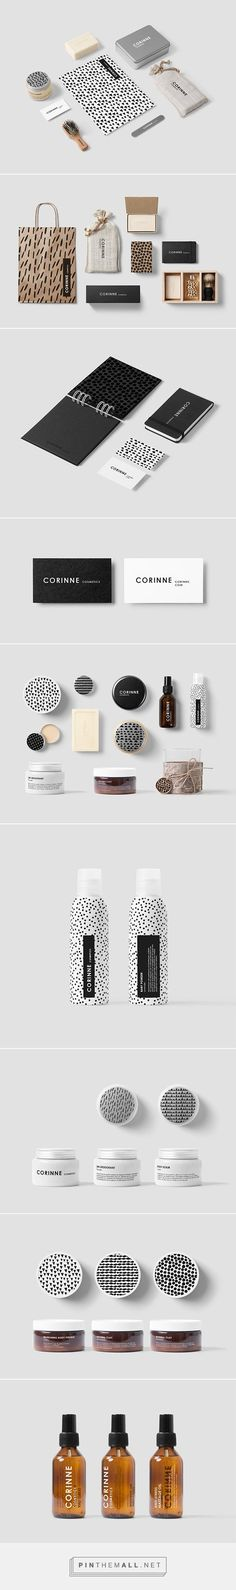 Corinne Cosmetics Packaging on Behance | Fivestar Branding – Design and Branding Agency & Inspiration Gallery